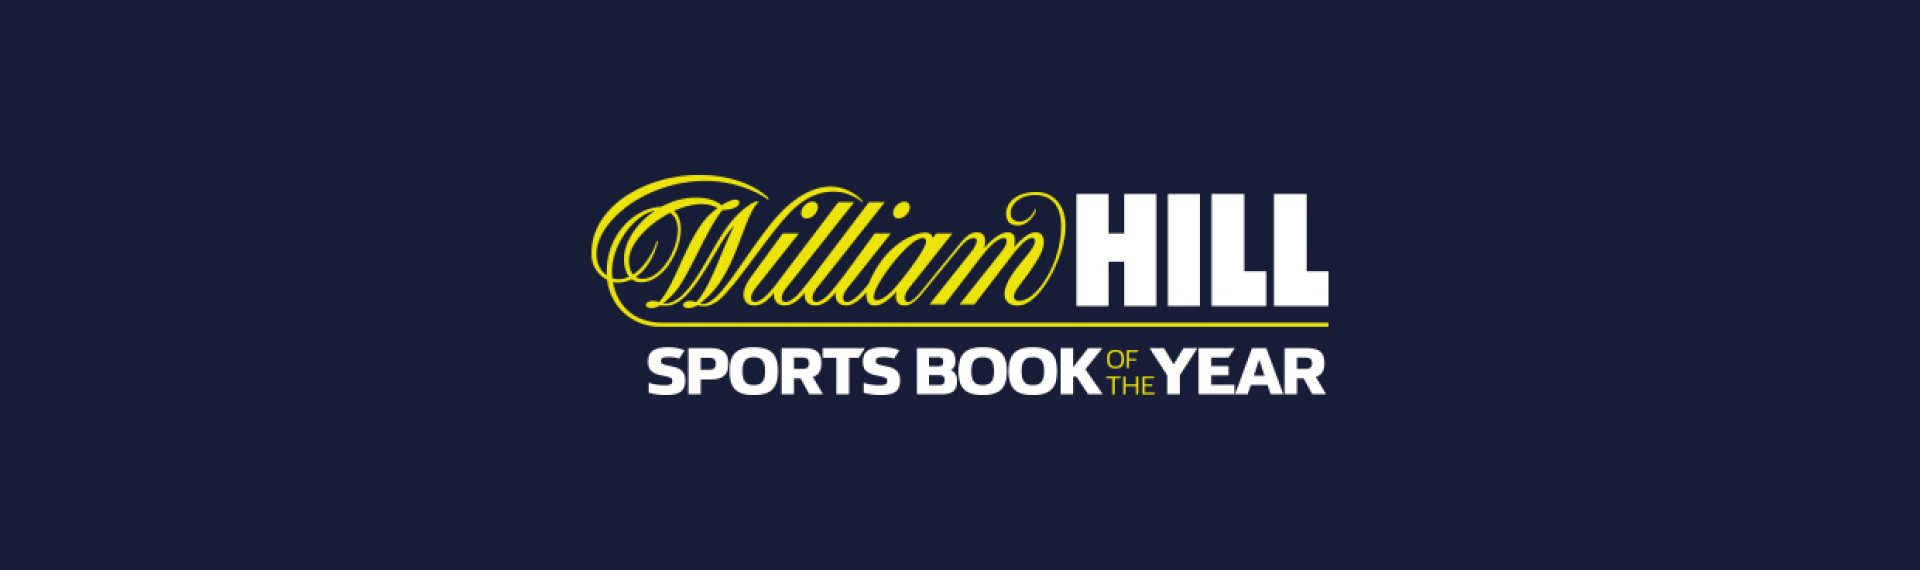 William Hill Sports Book Of The Year